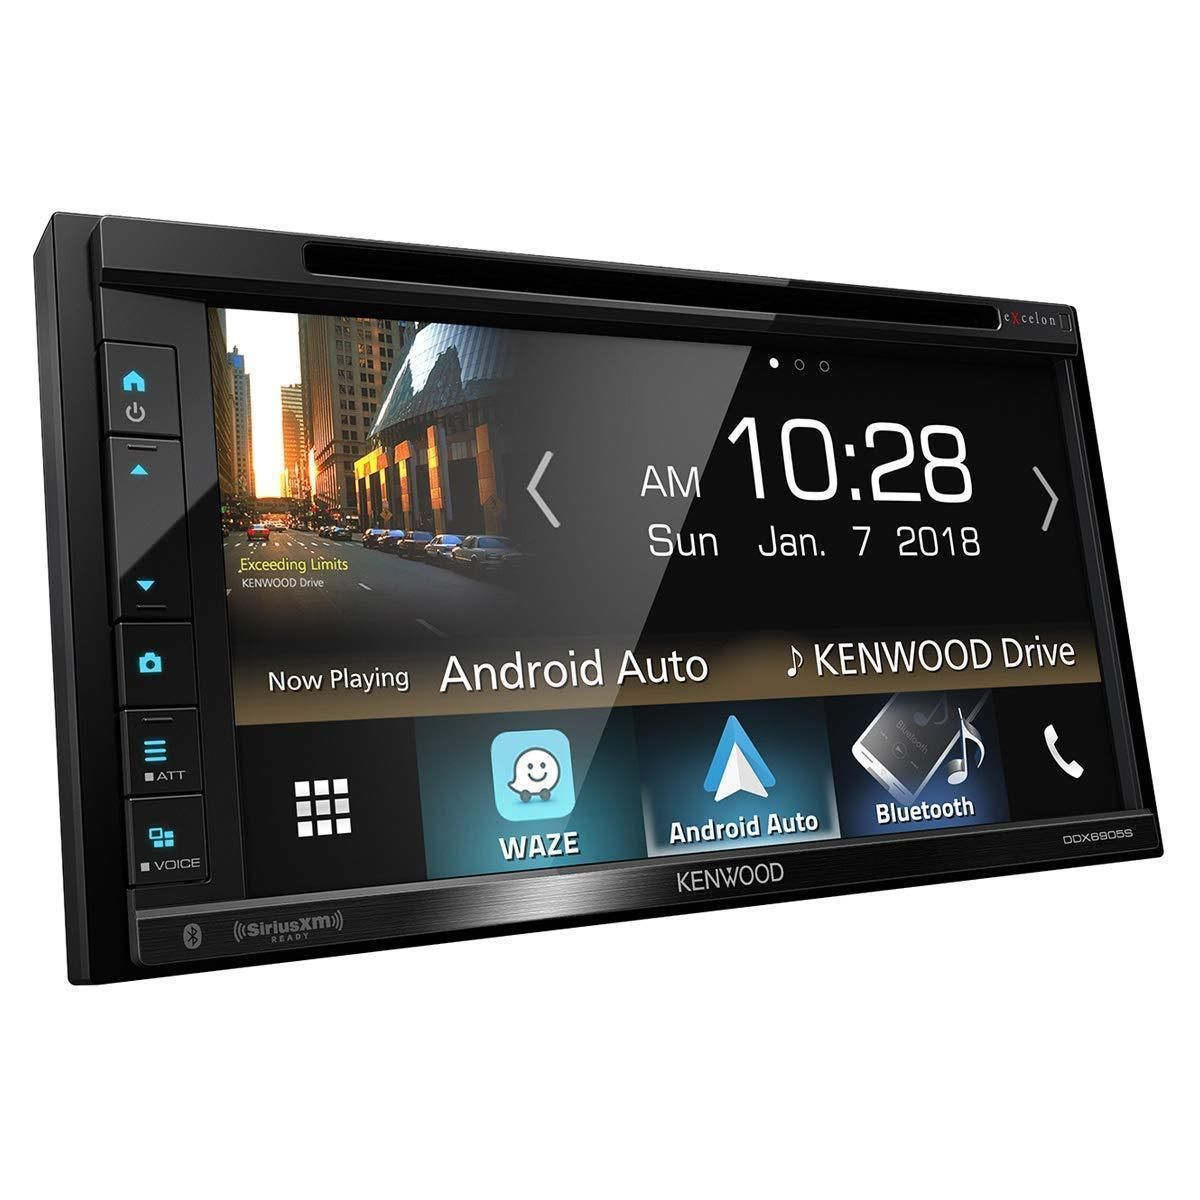 small resolution of kenwood dnx890hd excelon 6 95 double din navigation dvd receiver by kenwood 1199 00 the dnx890hd features the latest i